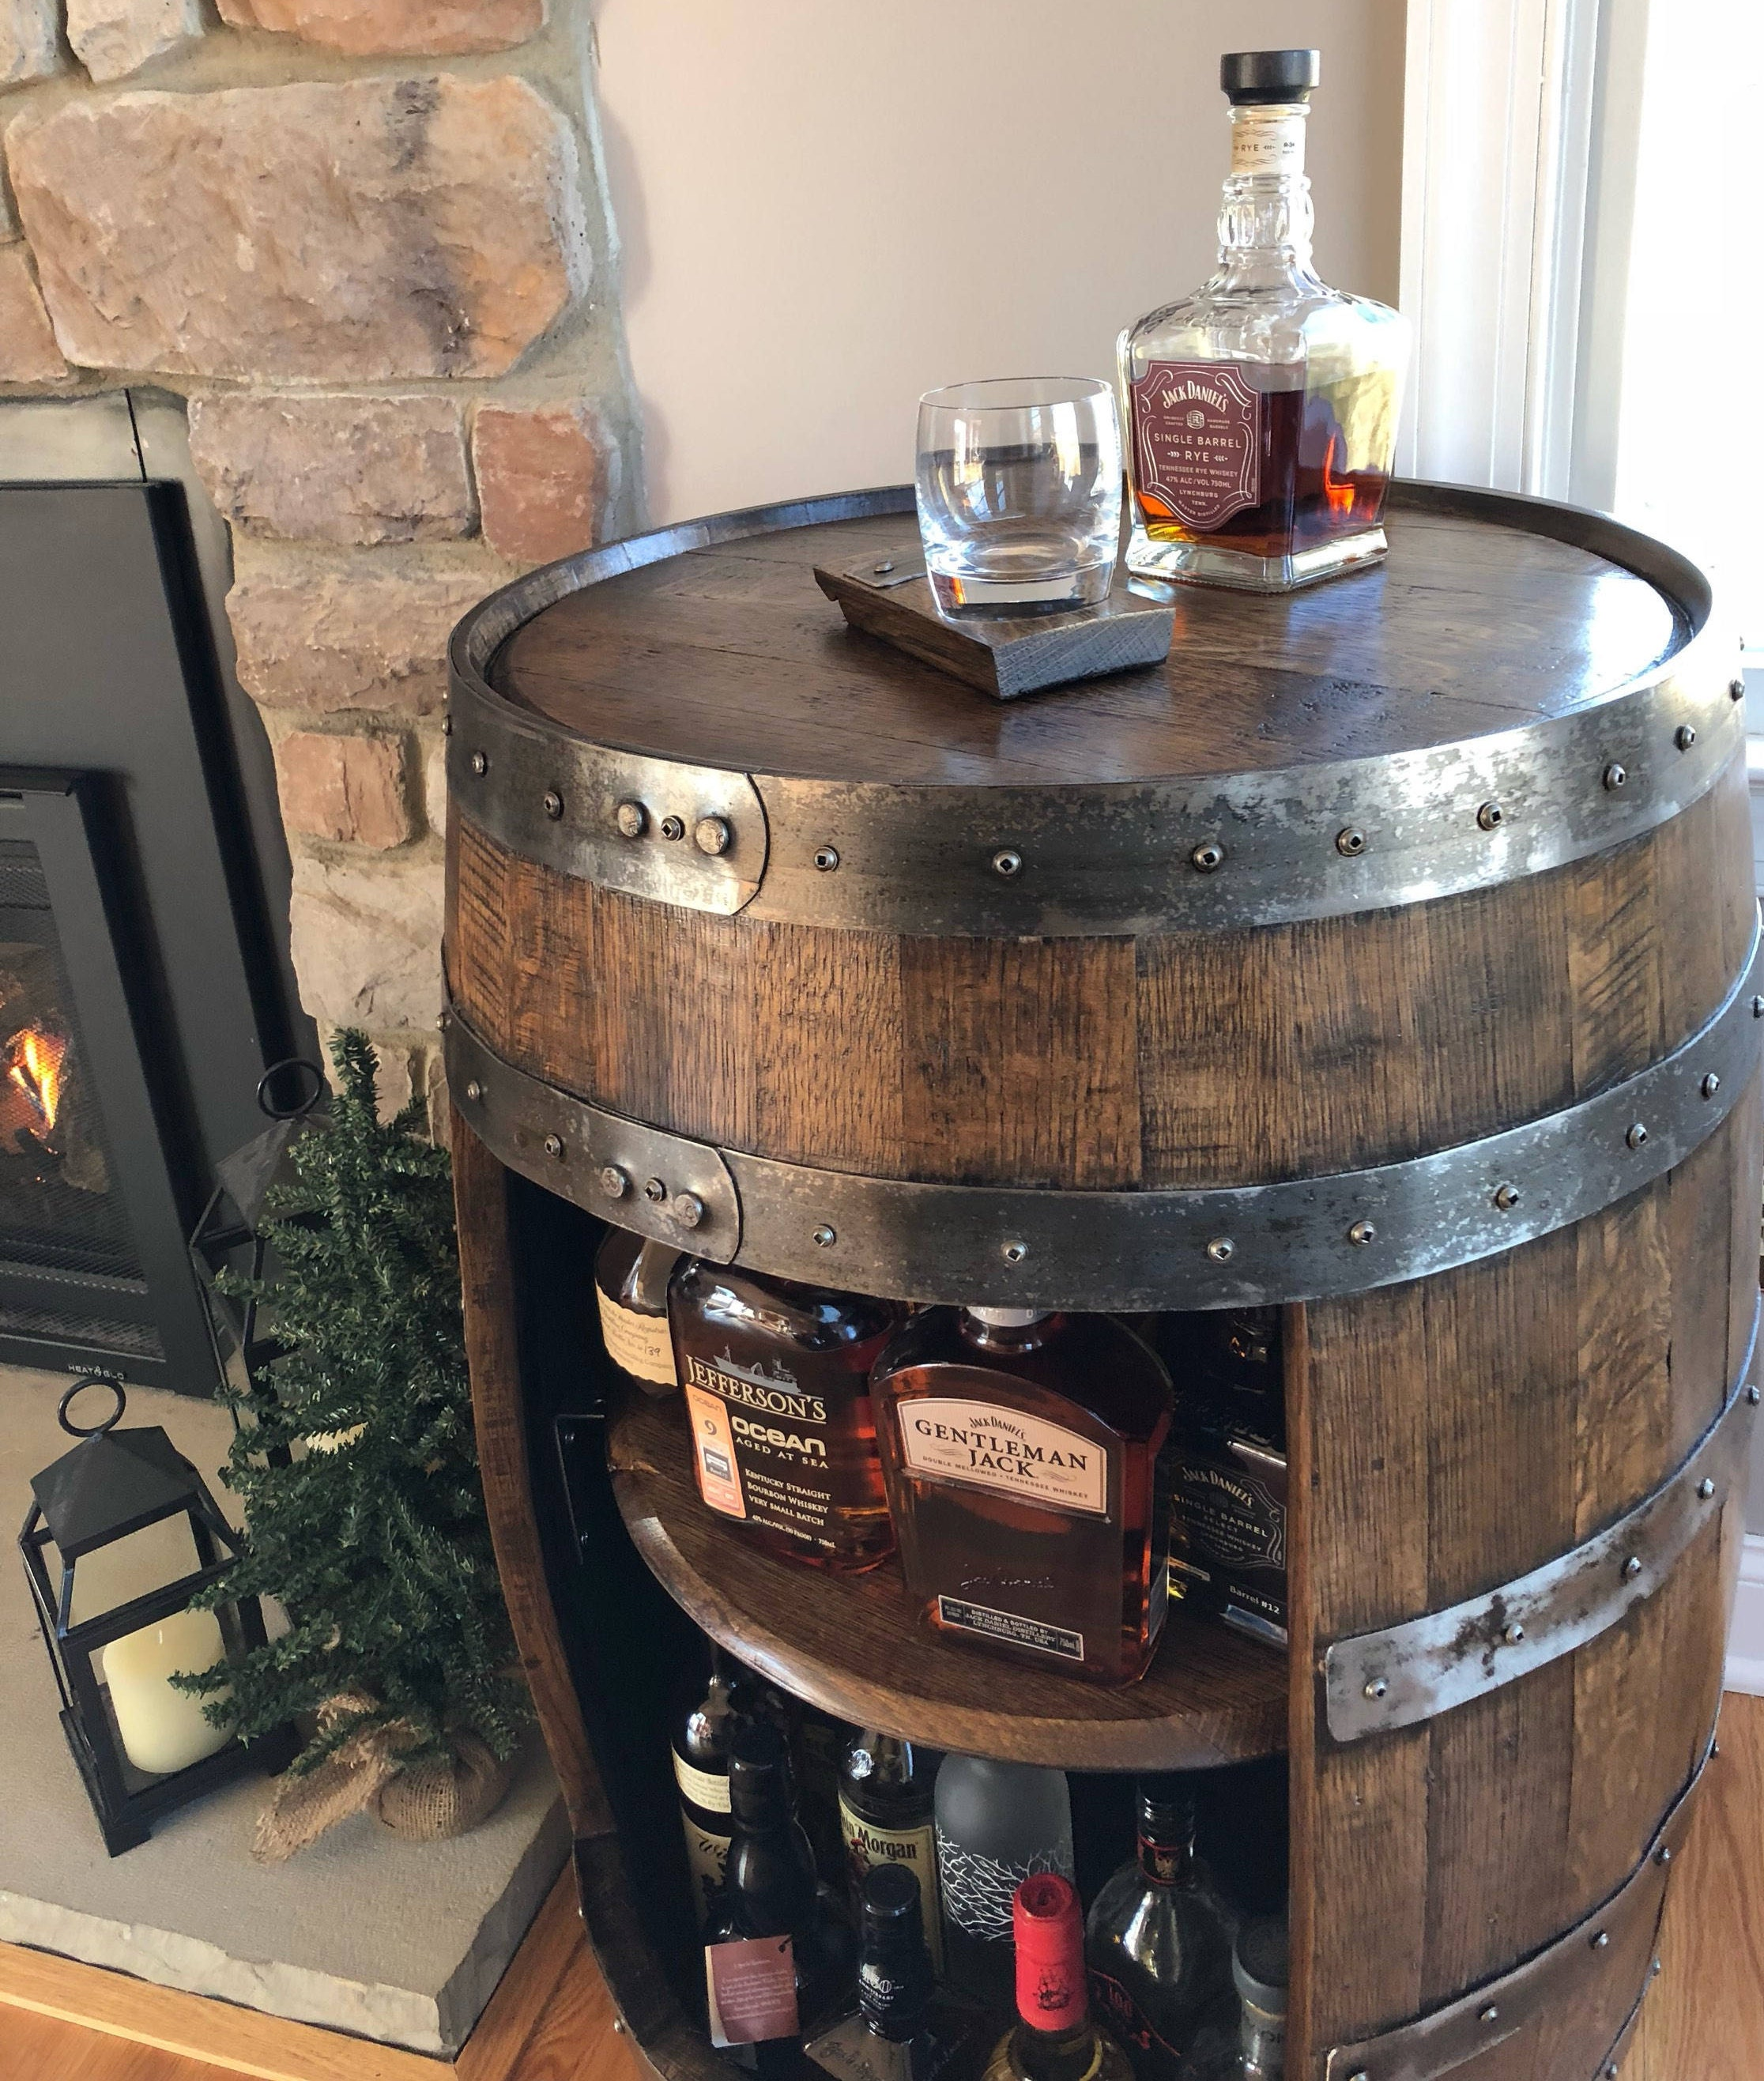 Whiskey Barrel Liquor Cabinet ~ Handcrafted From A Reclaimed Whiskey Barrel